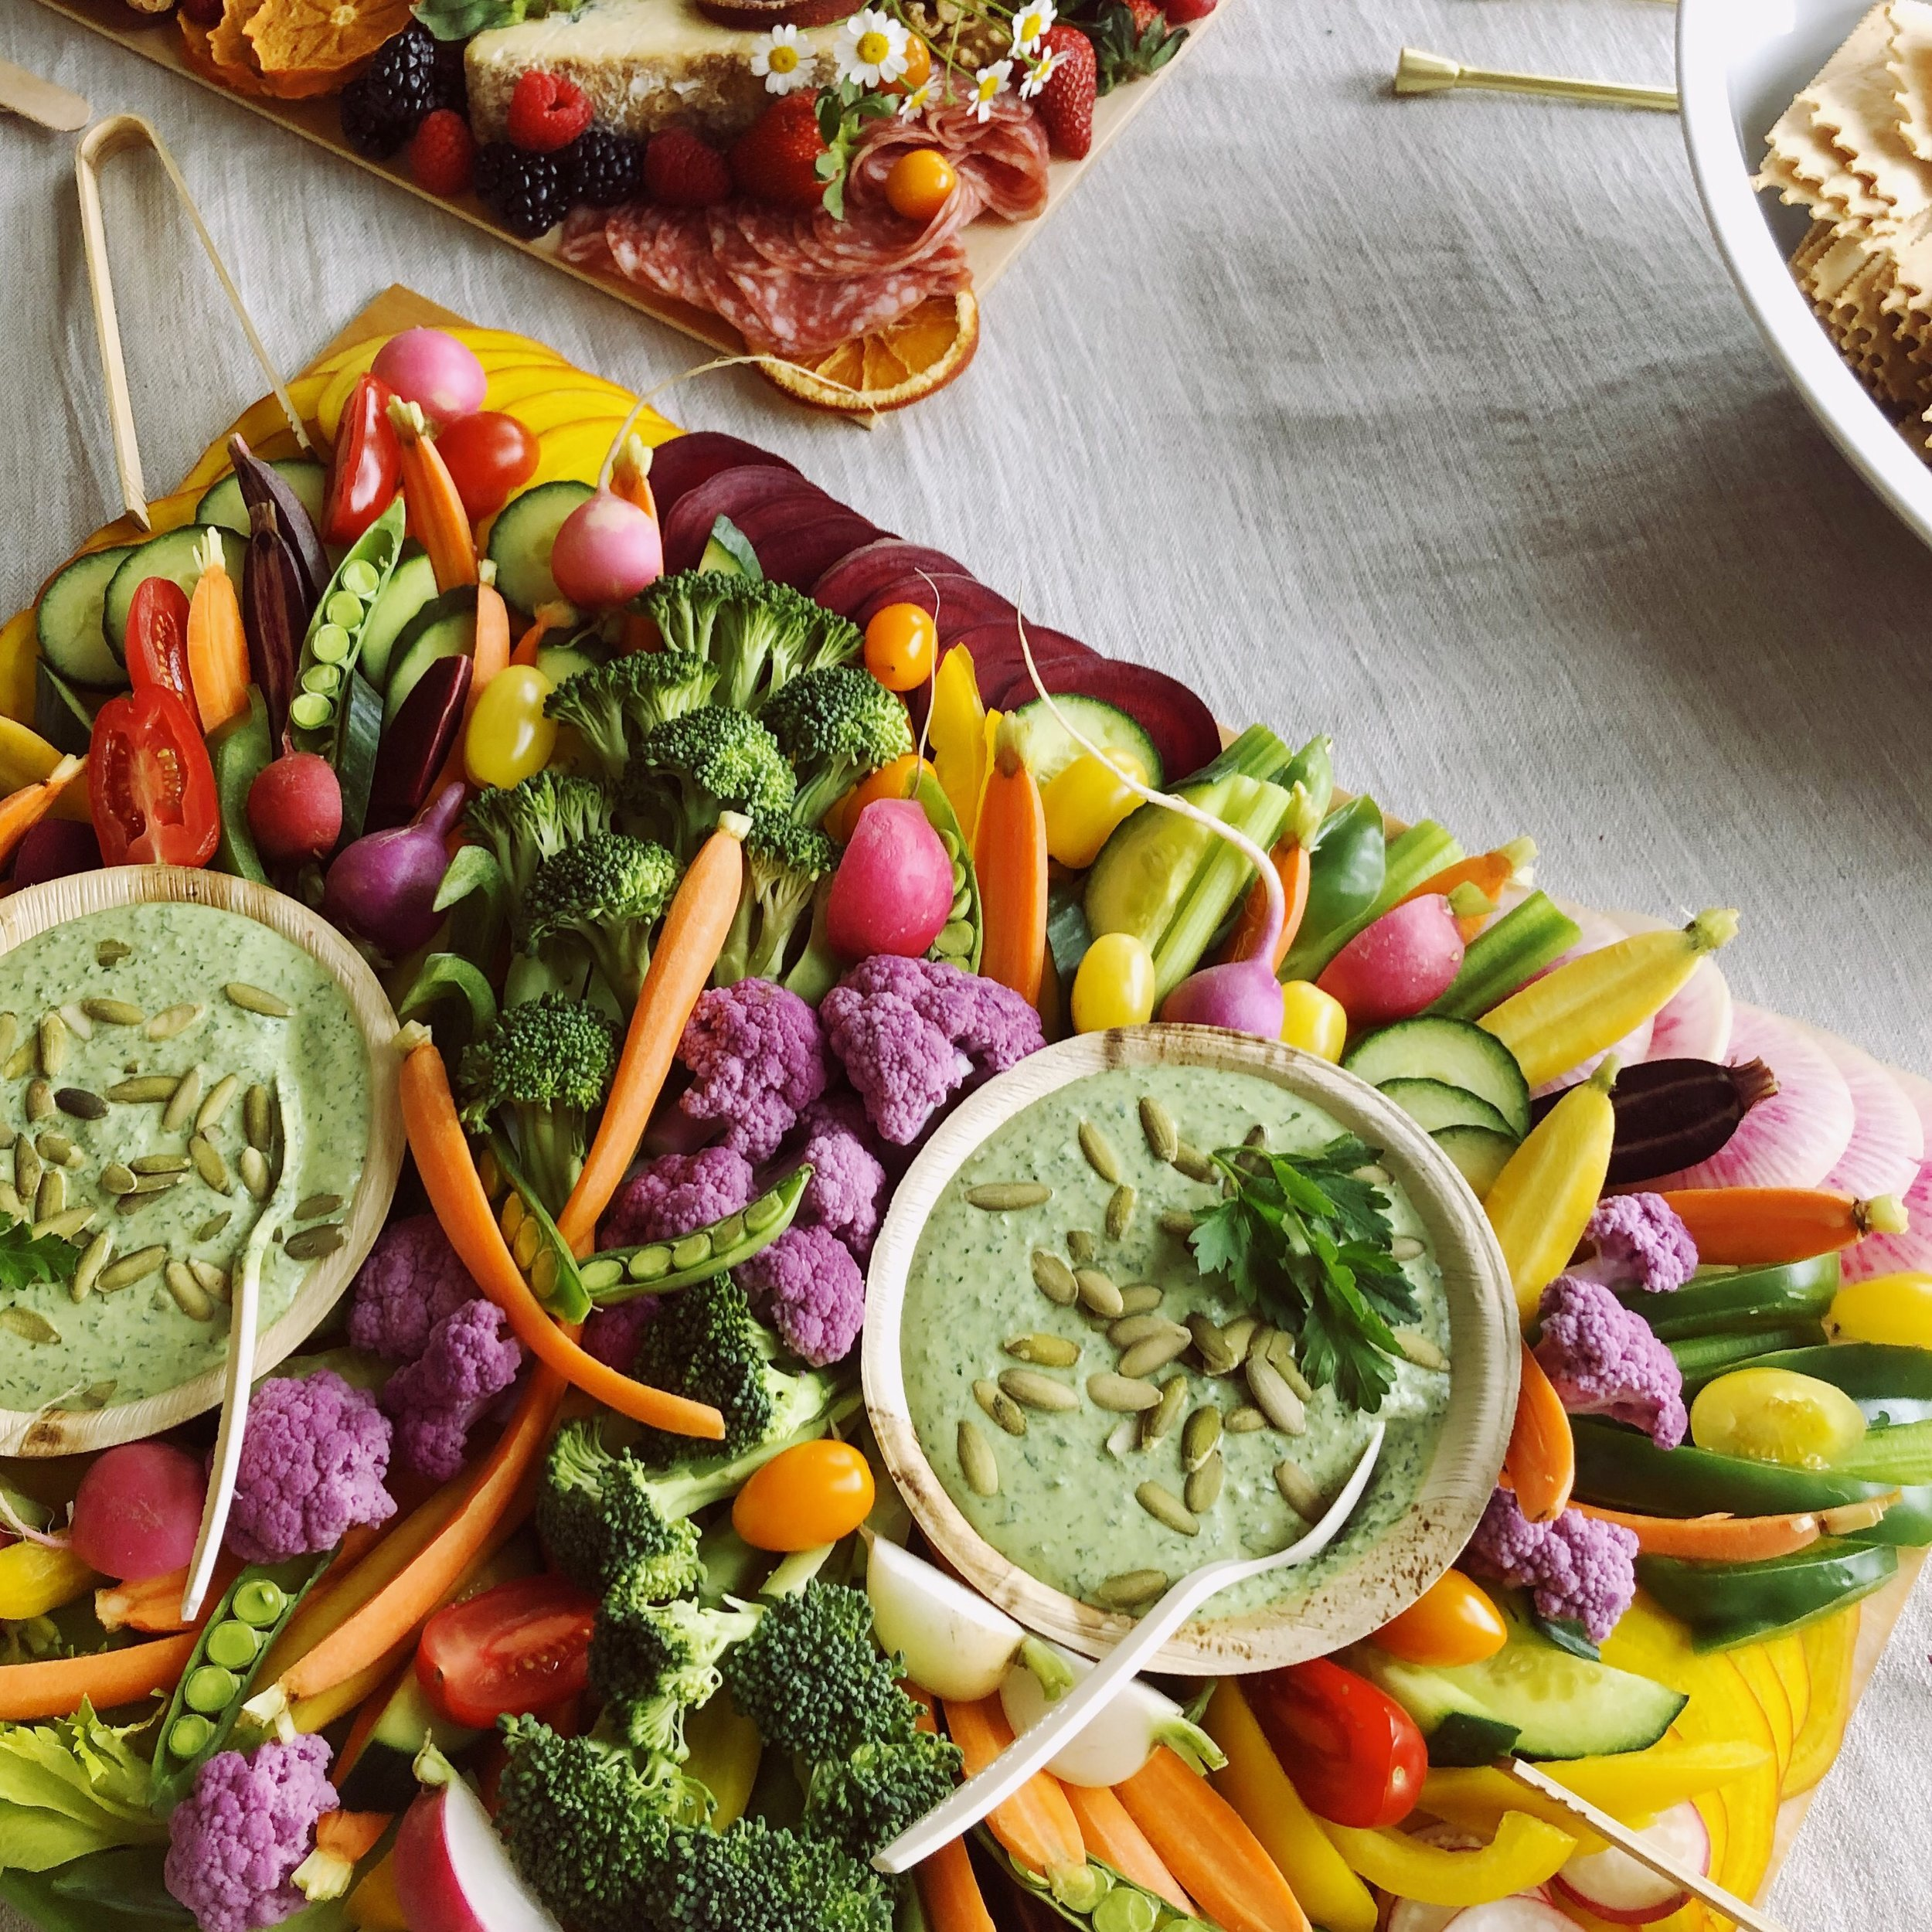 Classic Crudités - Freshly cut, organic vegetables, perfect for dipping in our signature green goddess dressing.Medium (serves 12; original price $80 + $10 delivery):2/month: $162 (save 10%)4/month: $306 (save 15%)Large (serves 24; original price $140 + $10 delivery):2/month: $270 (save 10%)4/month: $510 (save 15%)